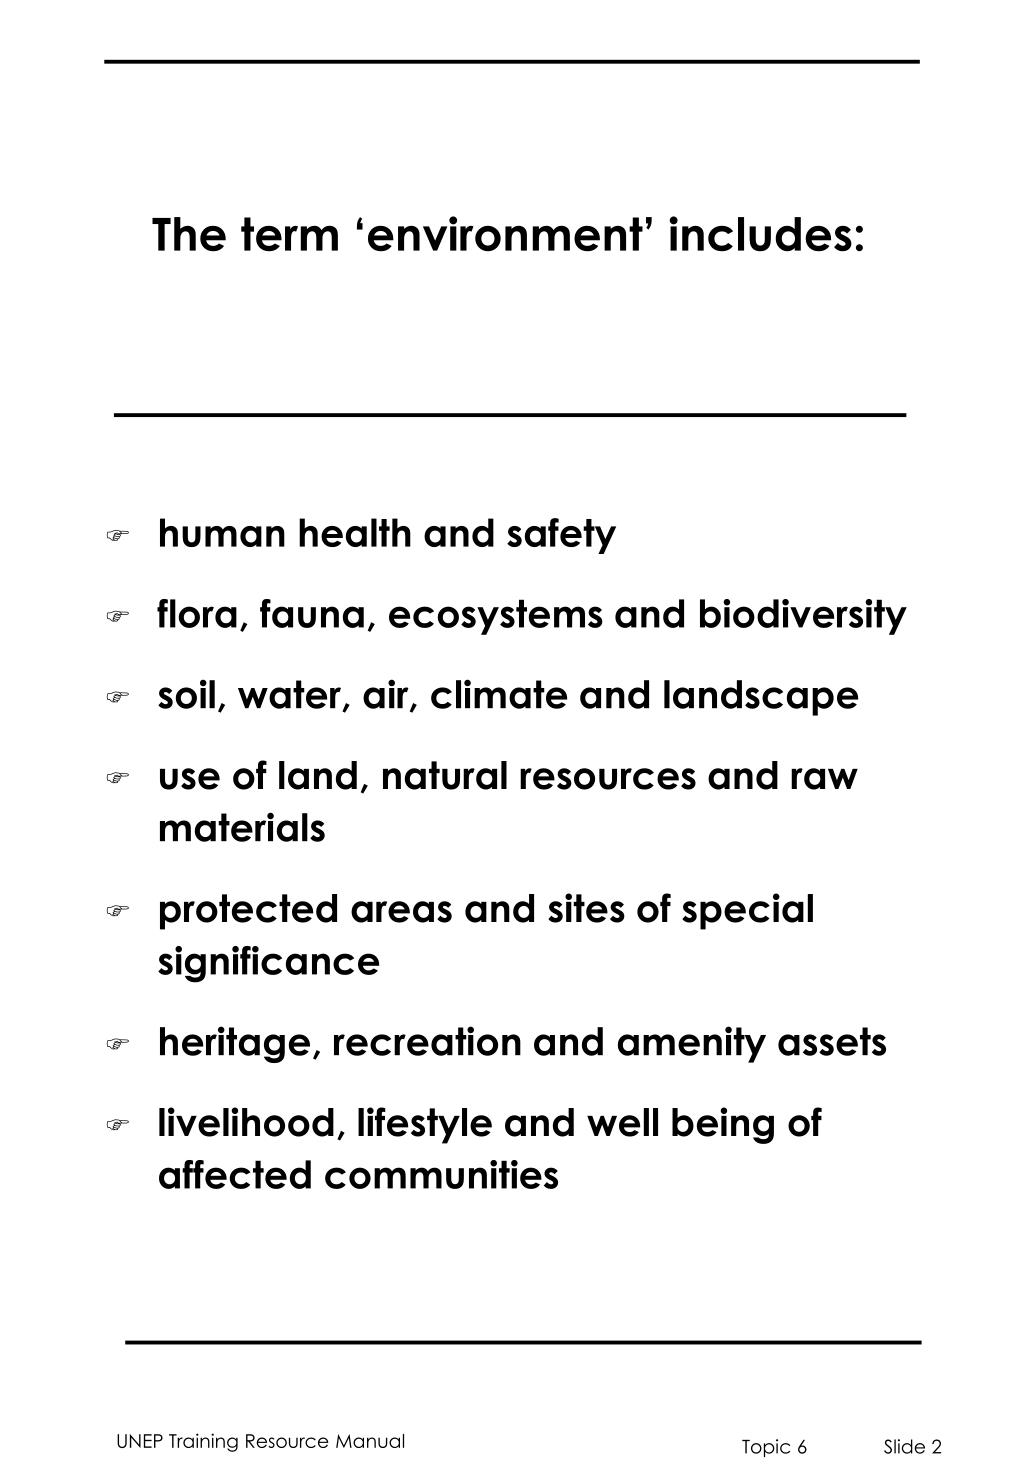 The term 'environment' includes: